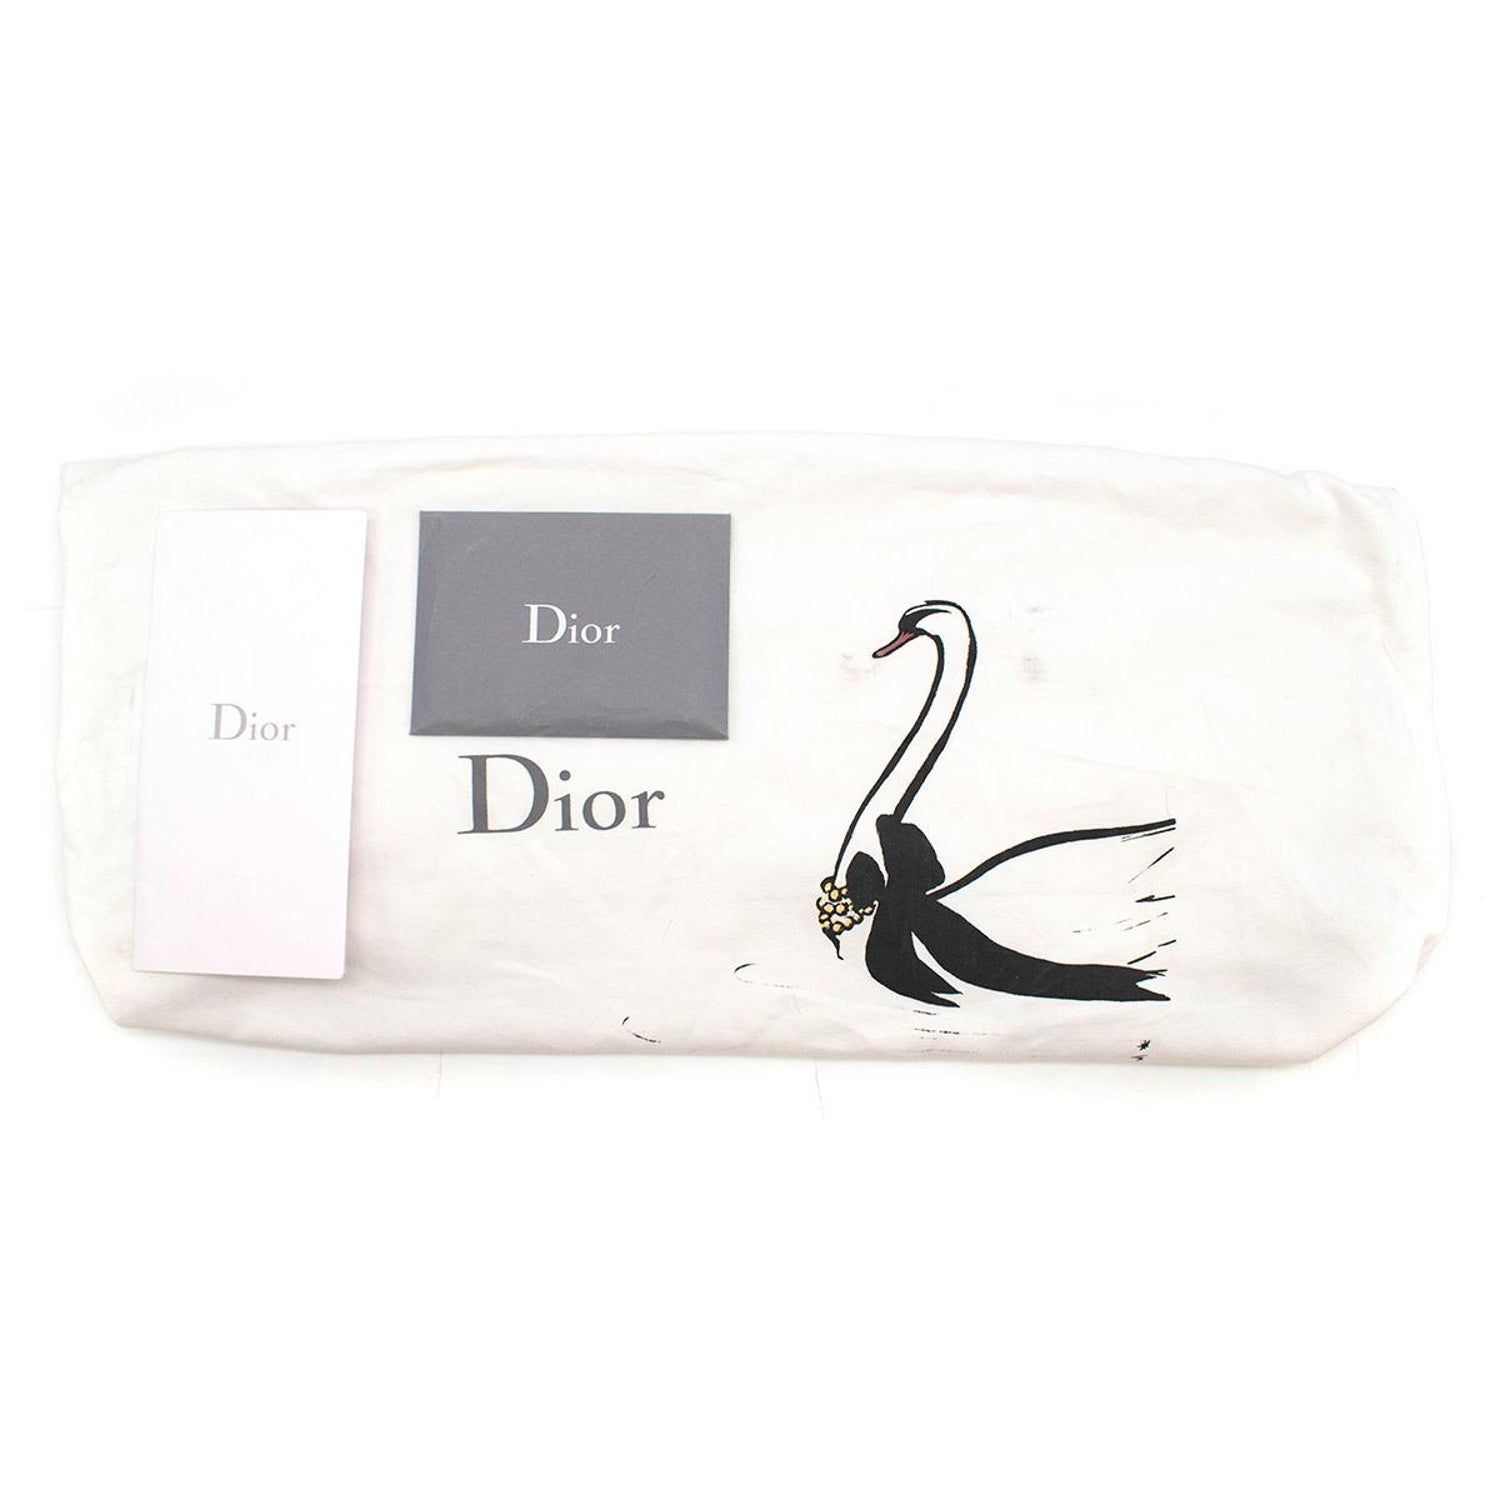 ff14c5cdc Dior Embroidered Canvas Book Tote Bag at 1stdibs